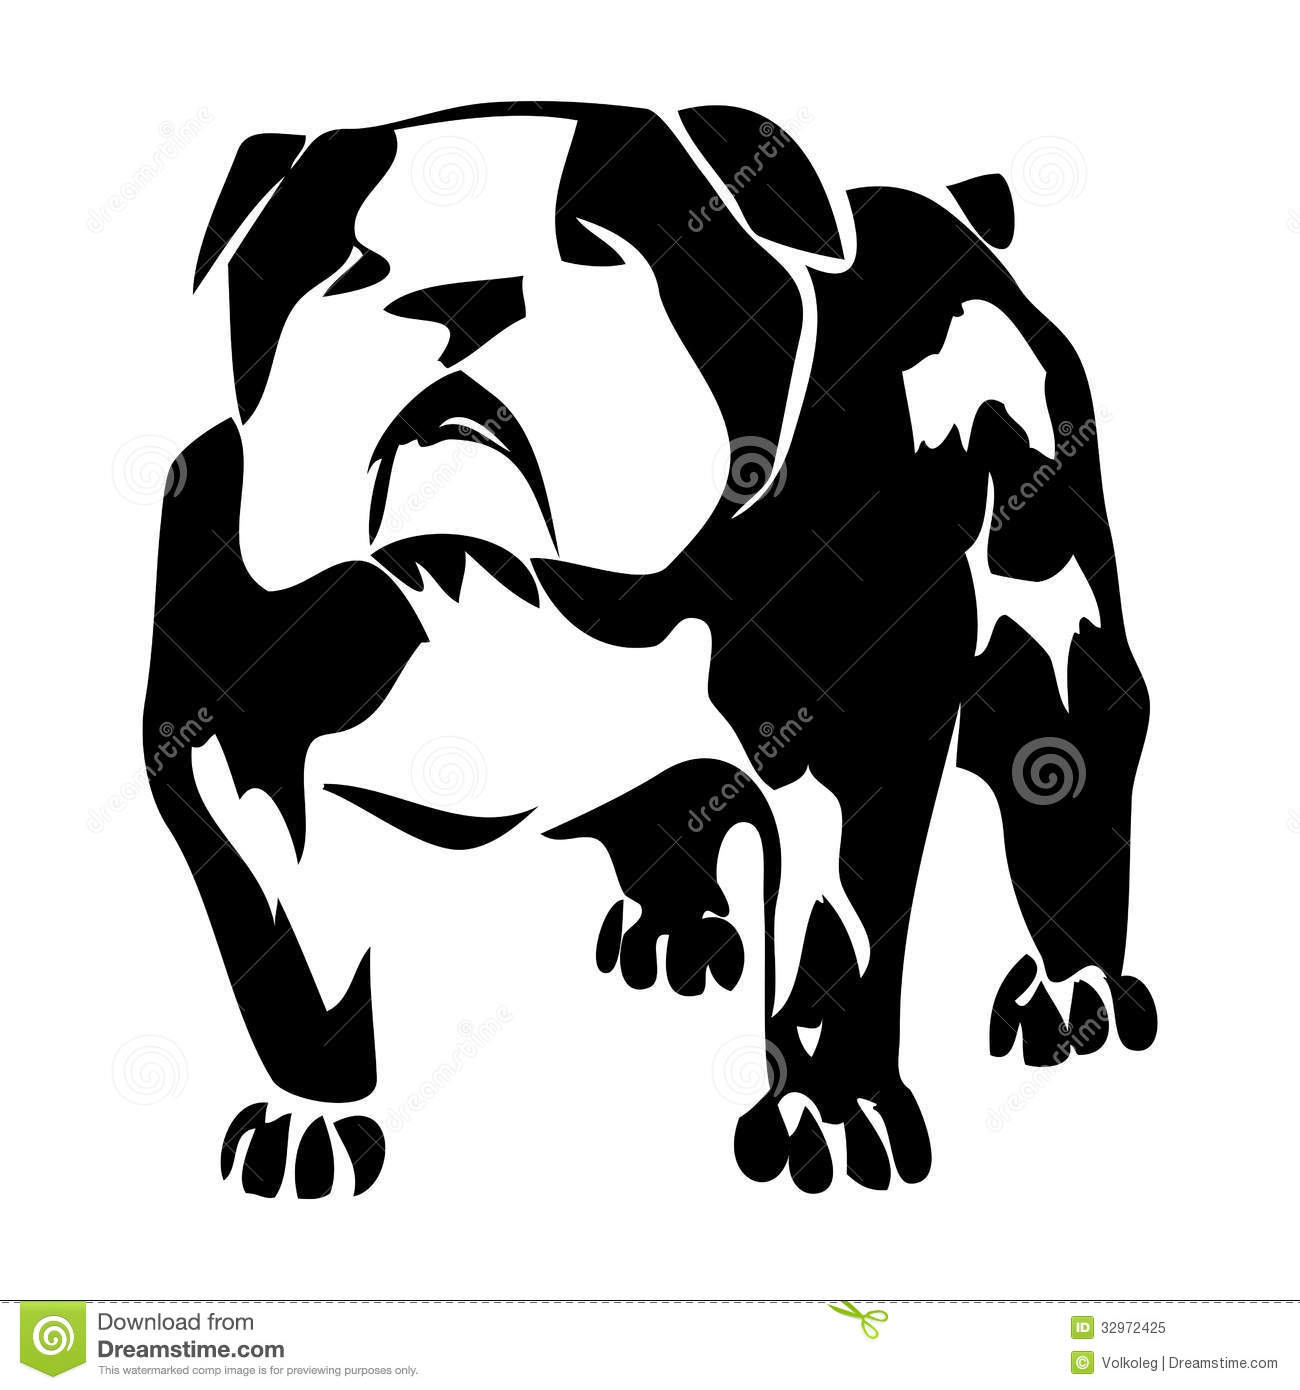 Bulldog Dog Black And White Vector Graphic Illustr Royalty Free Stock ...